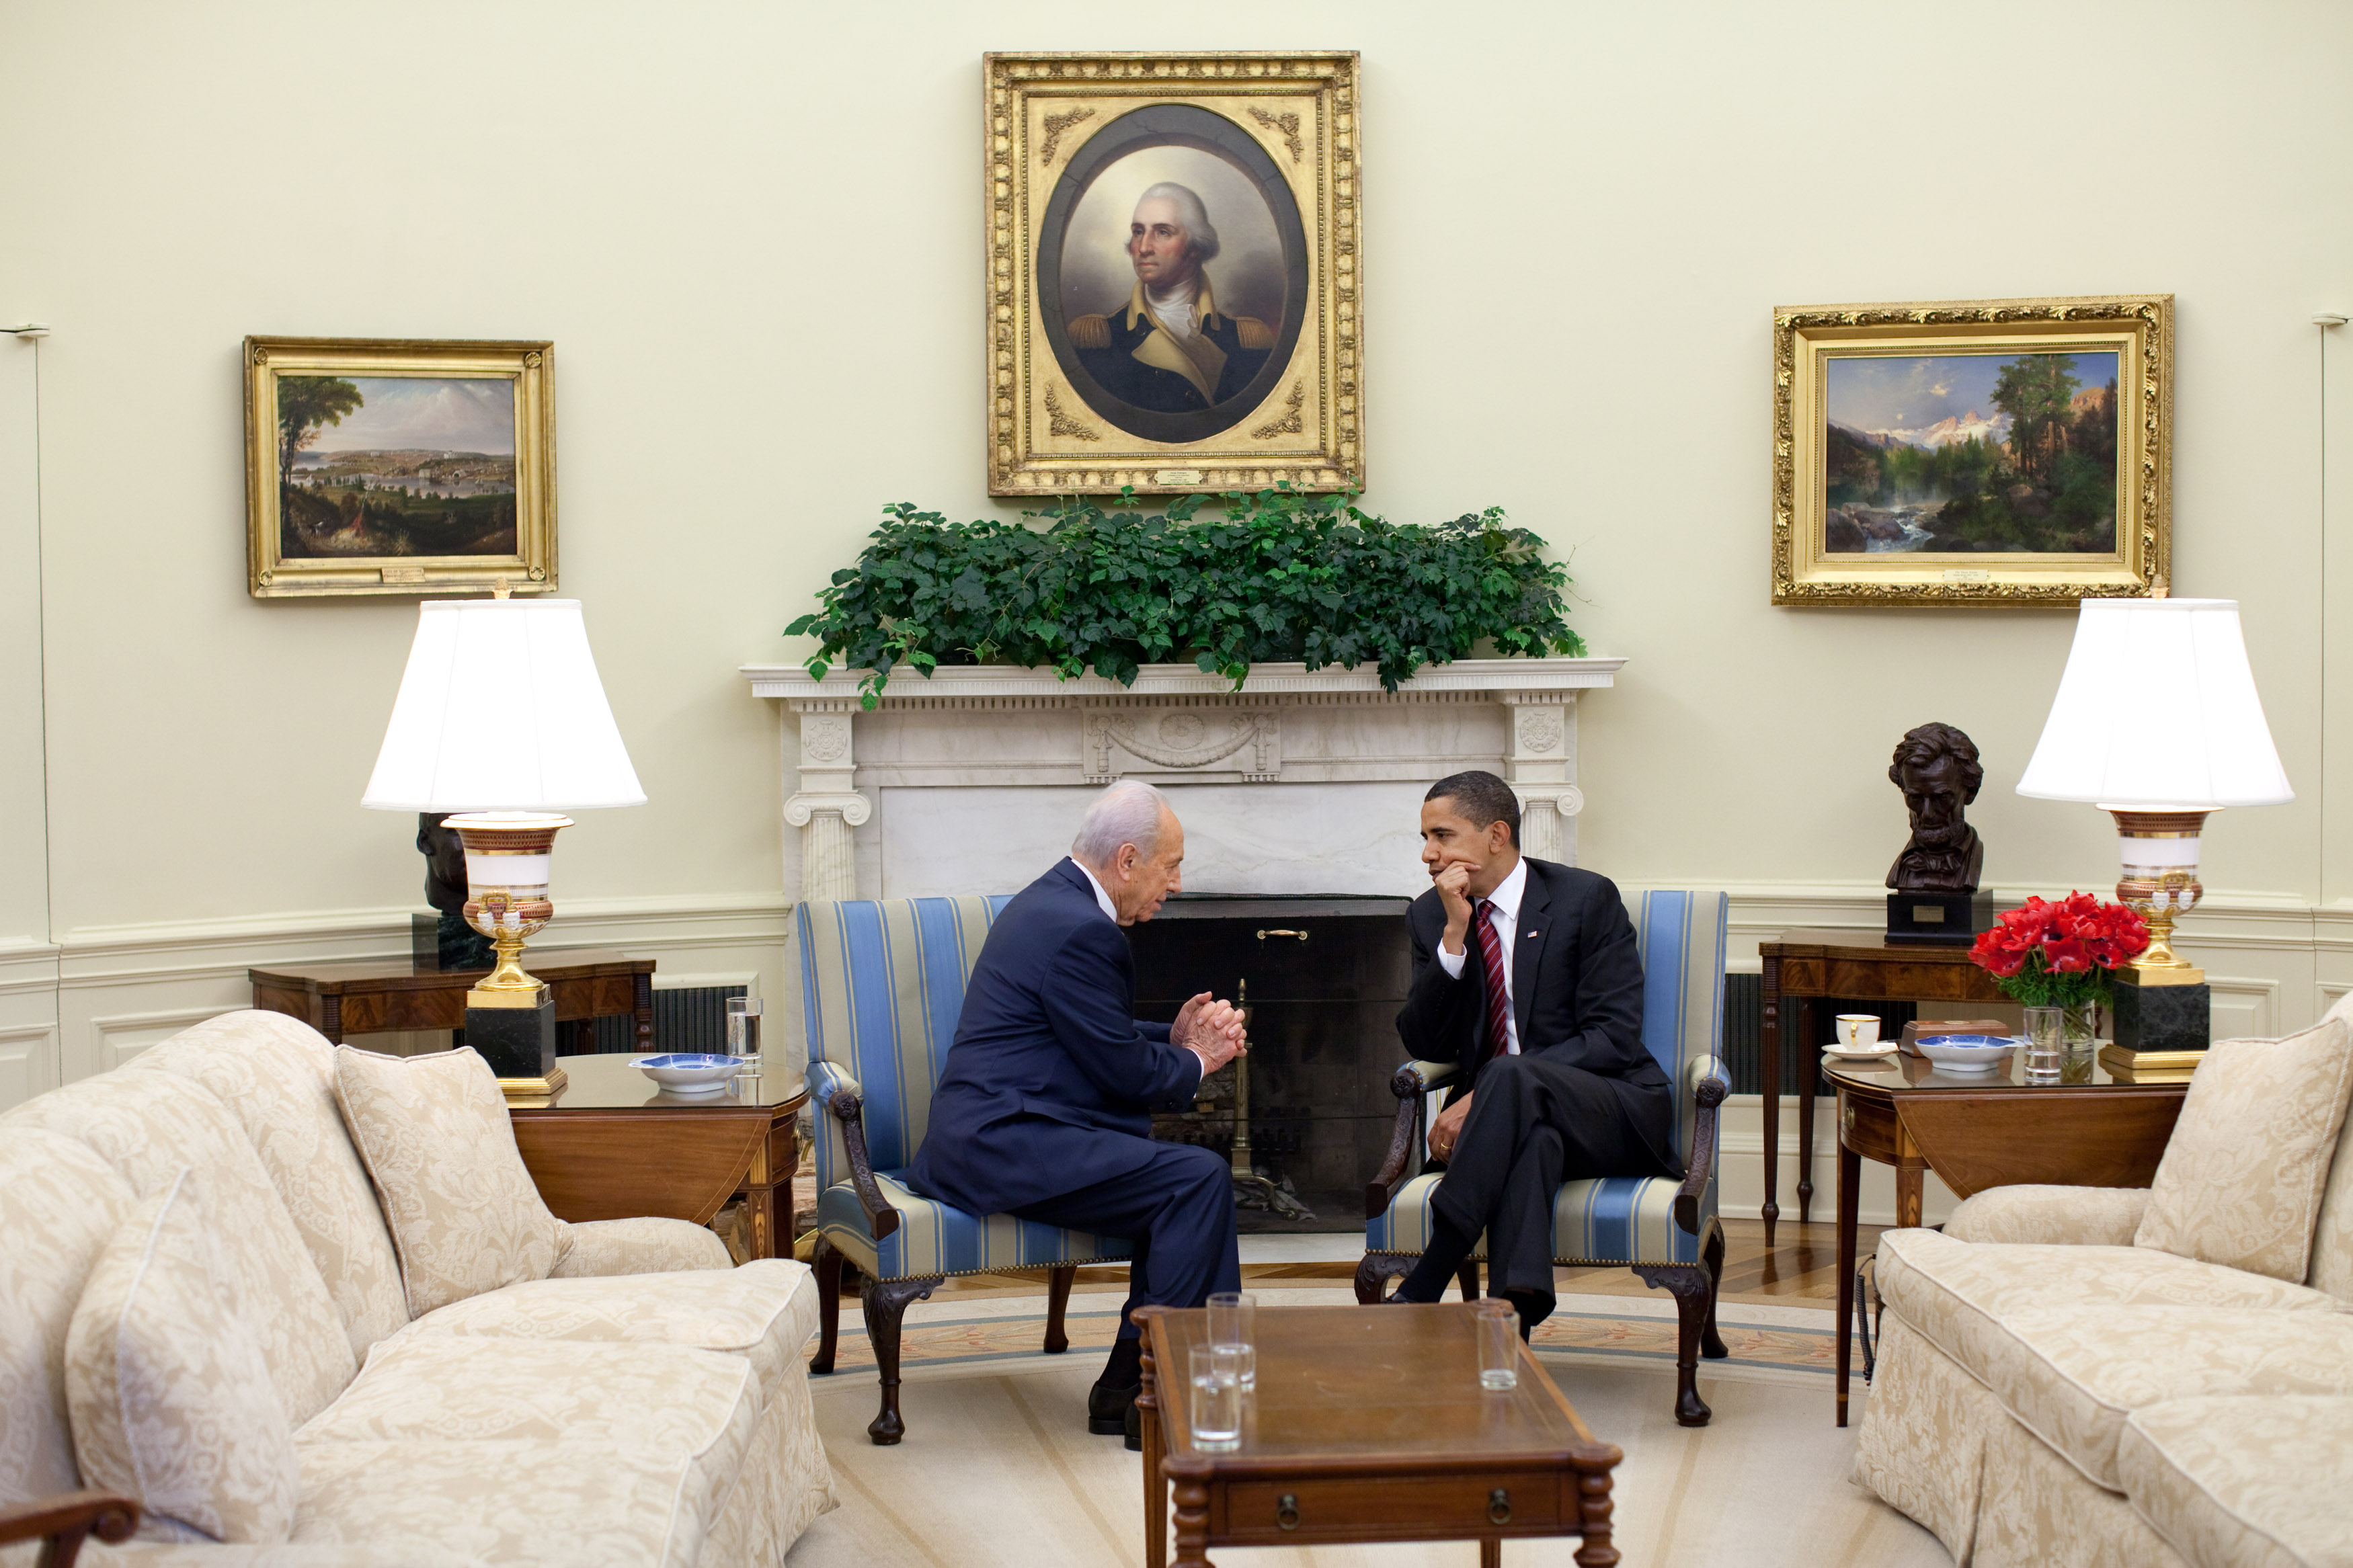 oval office paintings. File:Barack Obama Meets Shimon Peres In The Oval Office.jpg Office Paintings